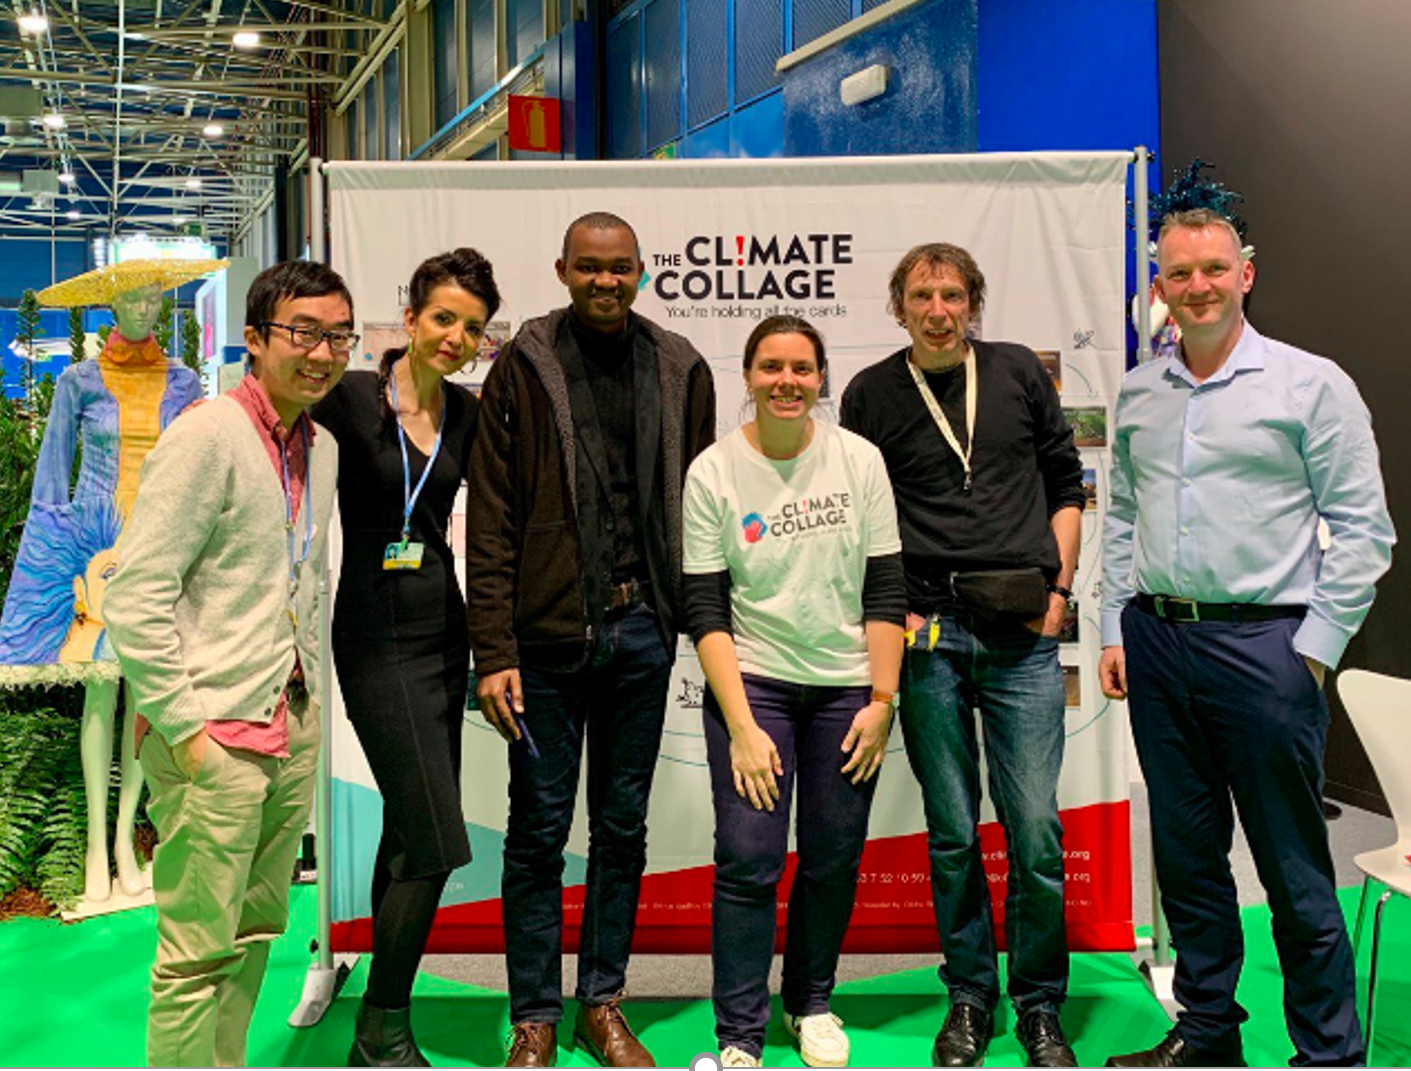 COP25 group image